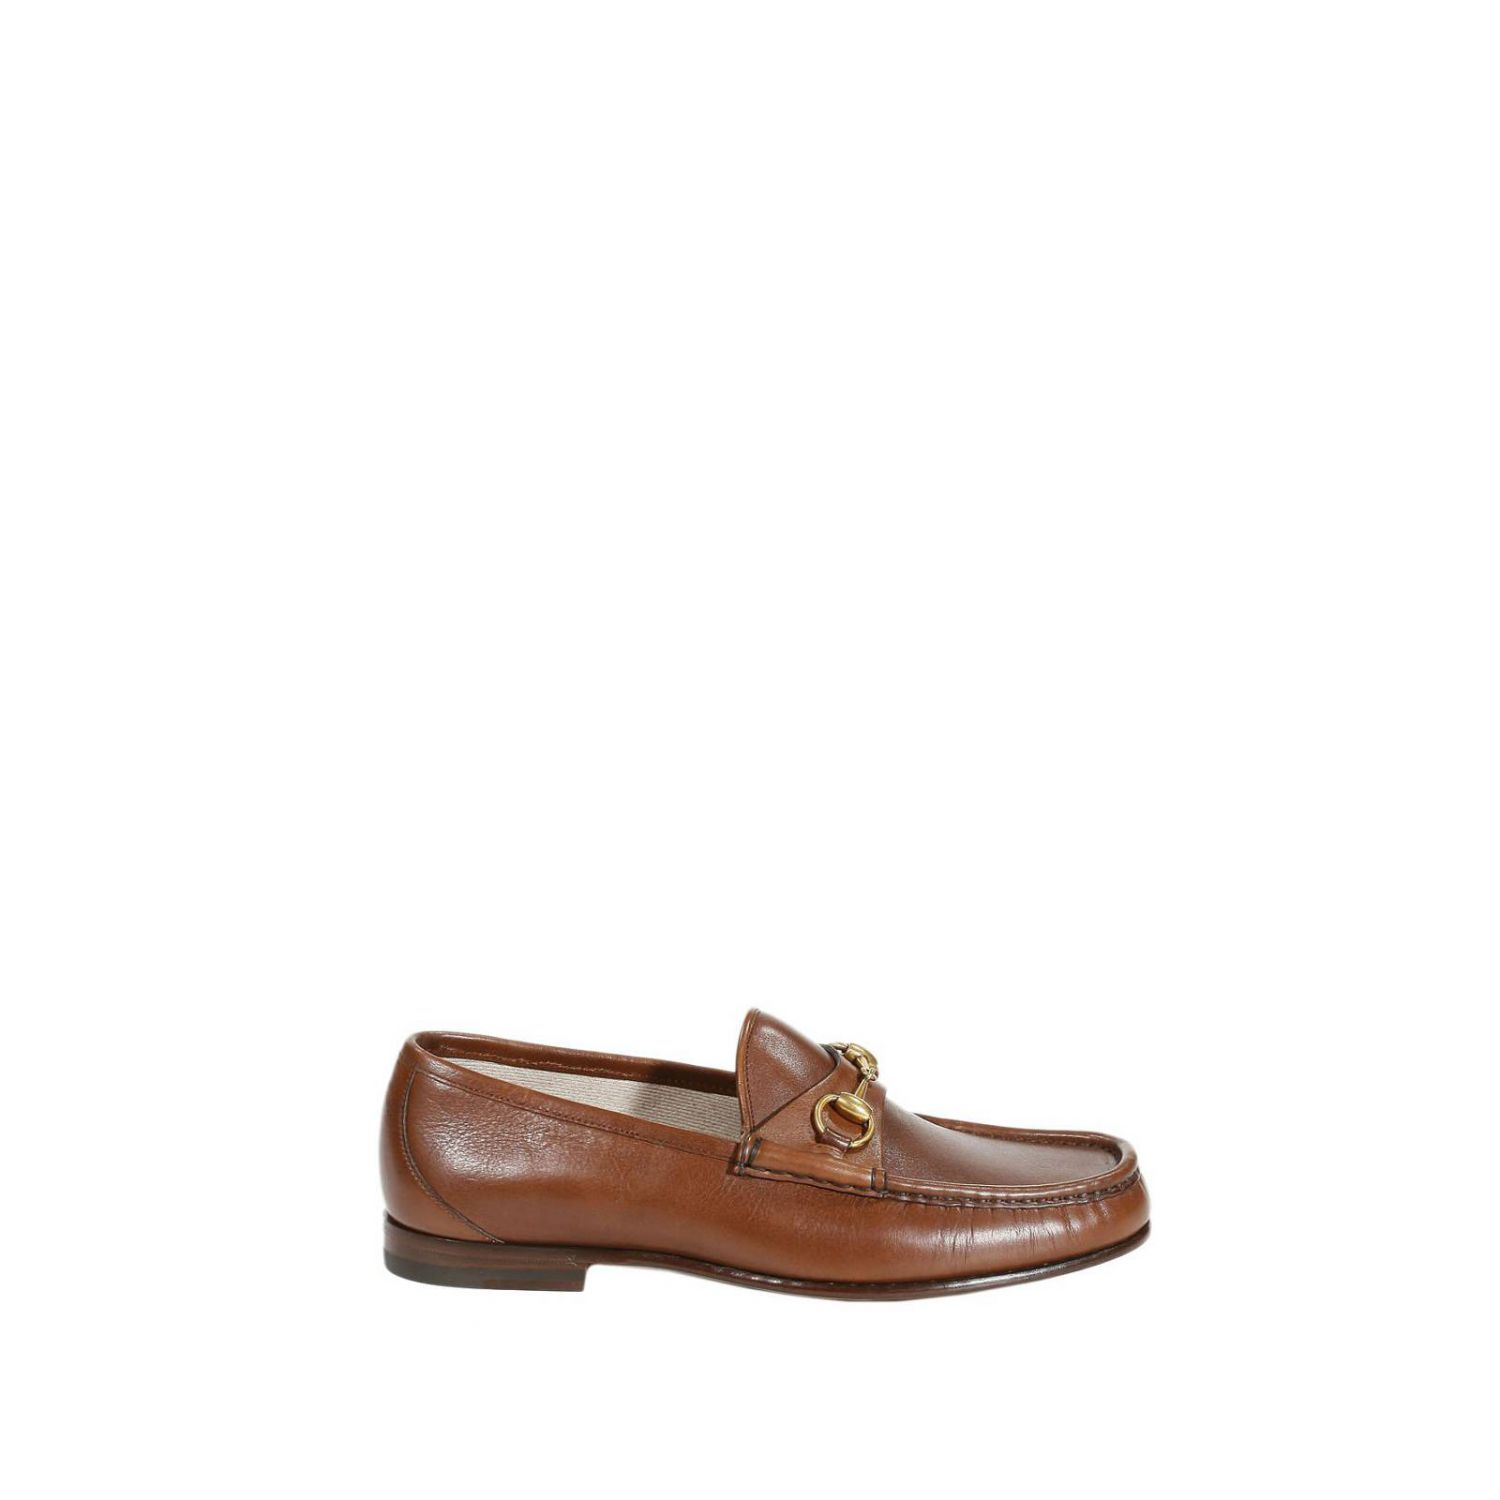 Gucci Shoes Leather Sole Roos Loafers Leather Horsebit In Brown For Men | Lyst